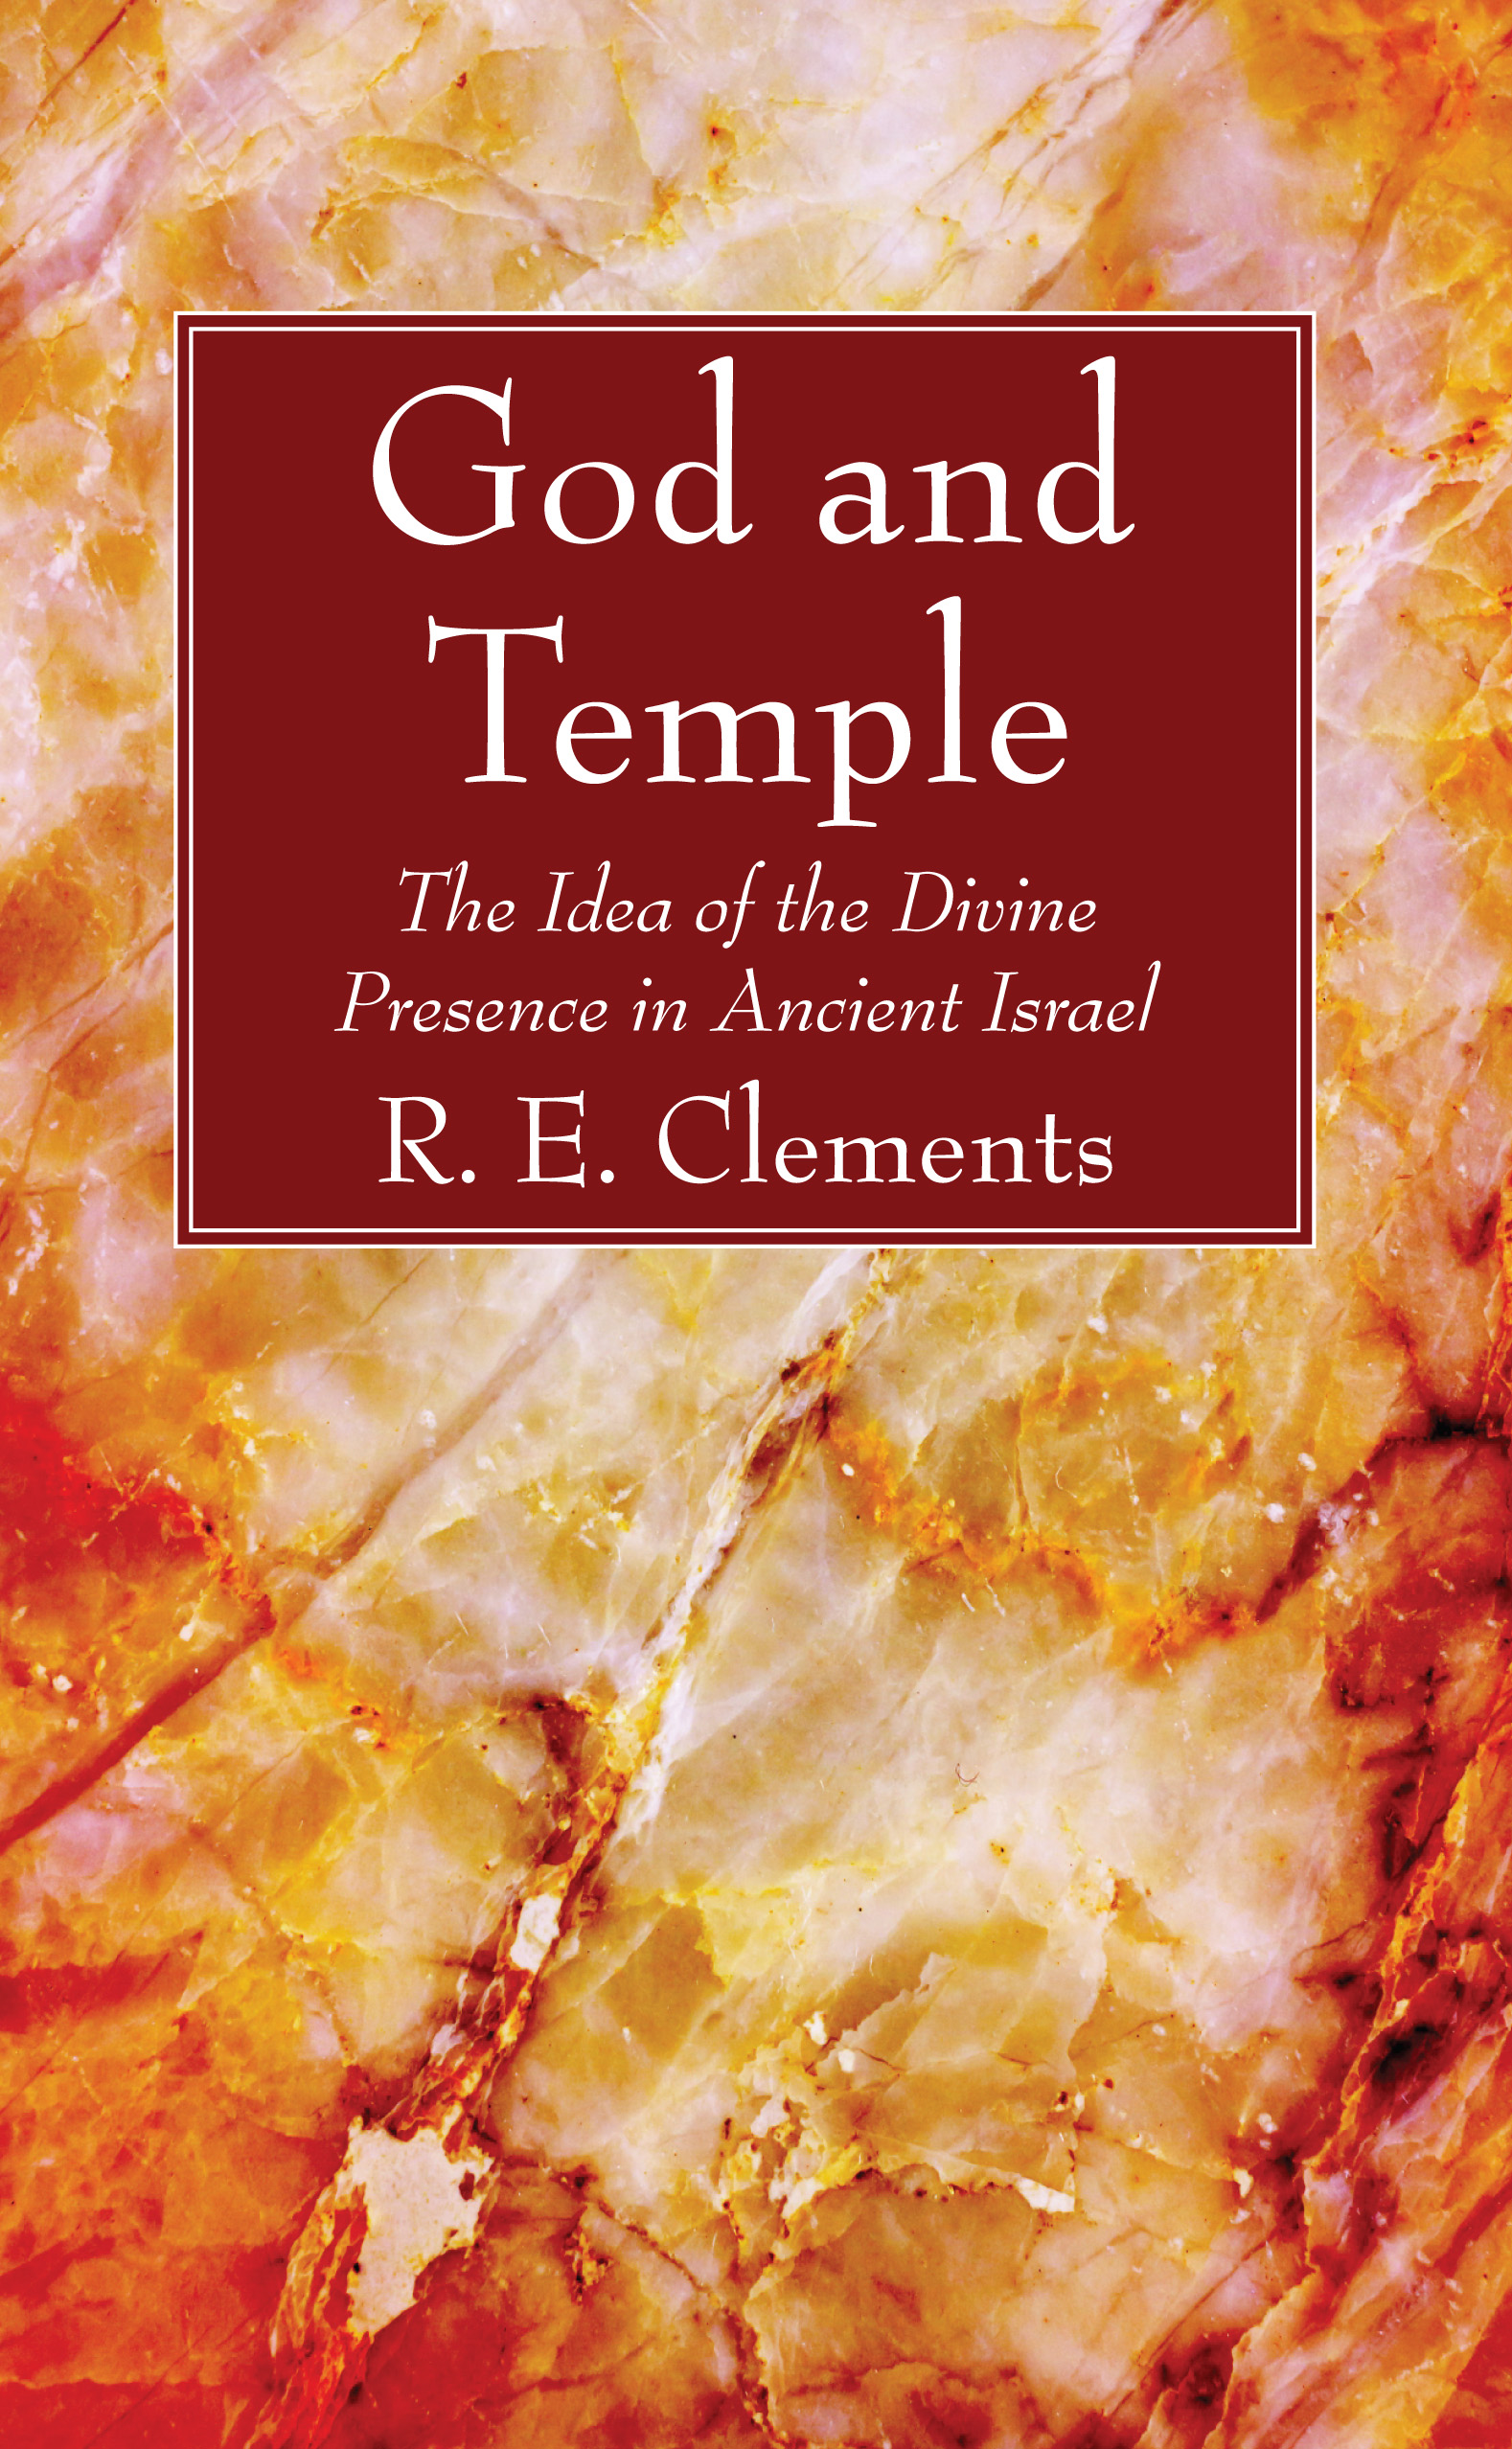 God and Temple: The Idea of the Divine Presence in Ancient Israel